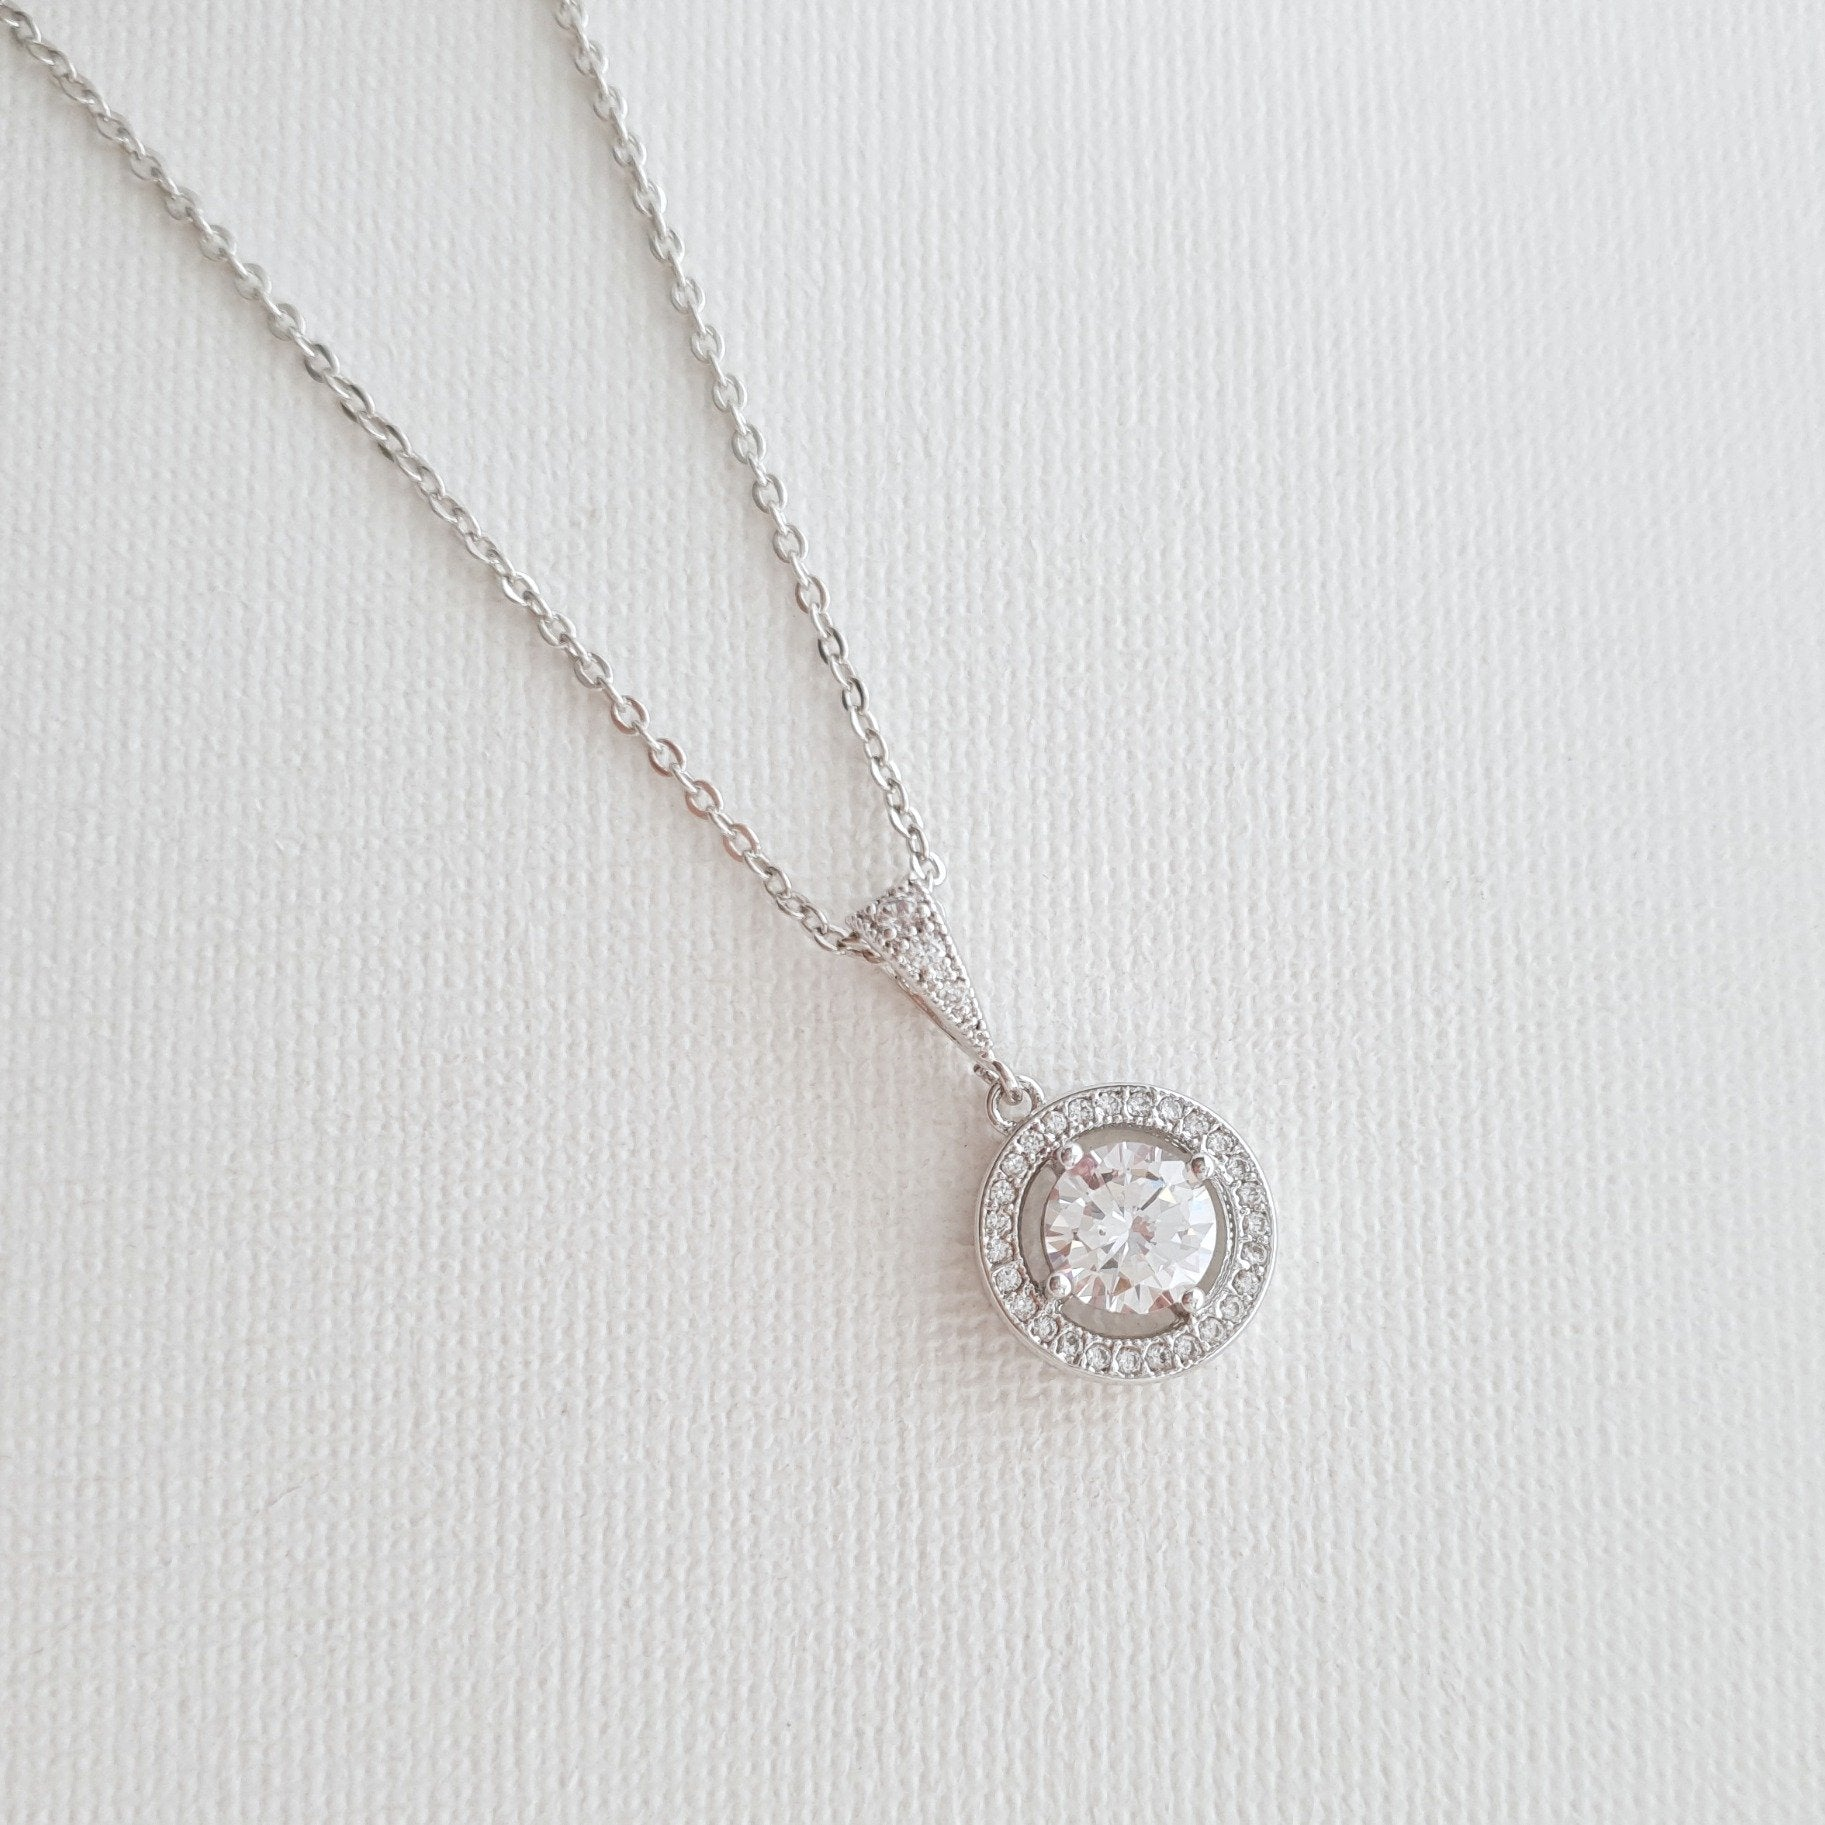 Circle Pendant Necklace in Solid Cubic Zirconia- Denise - PoetryDesigns